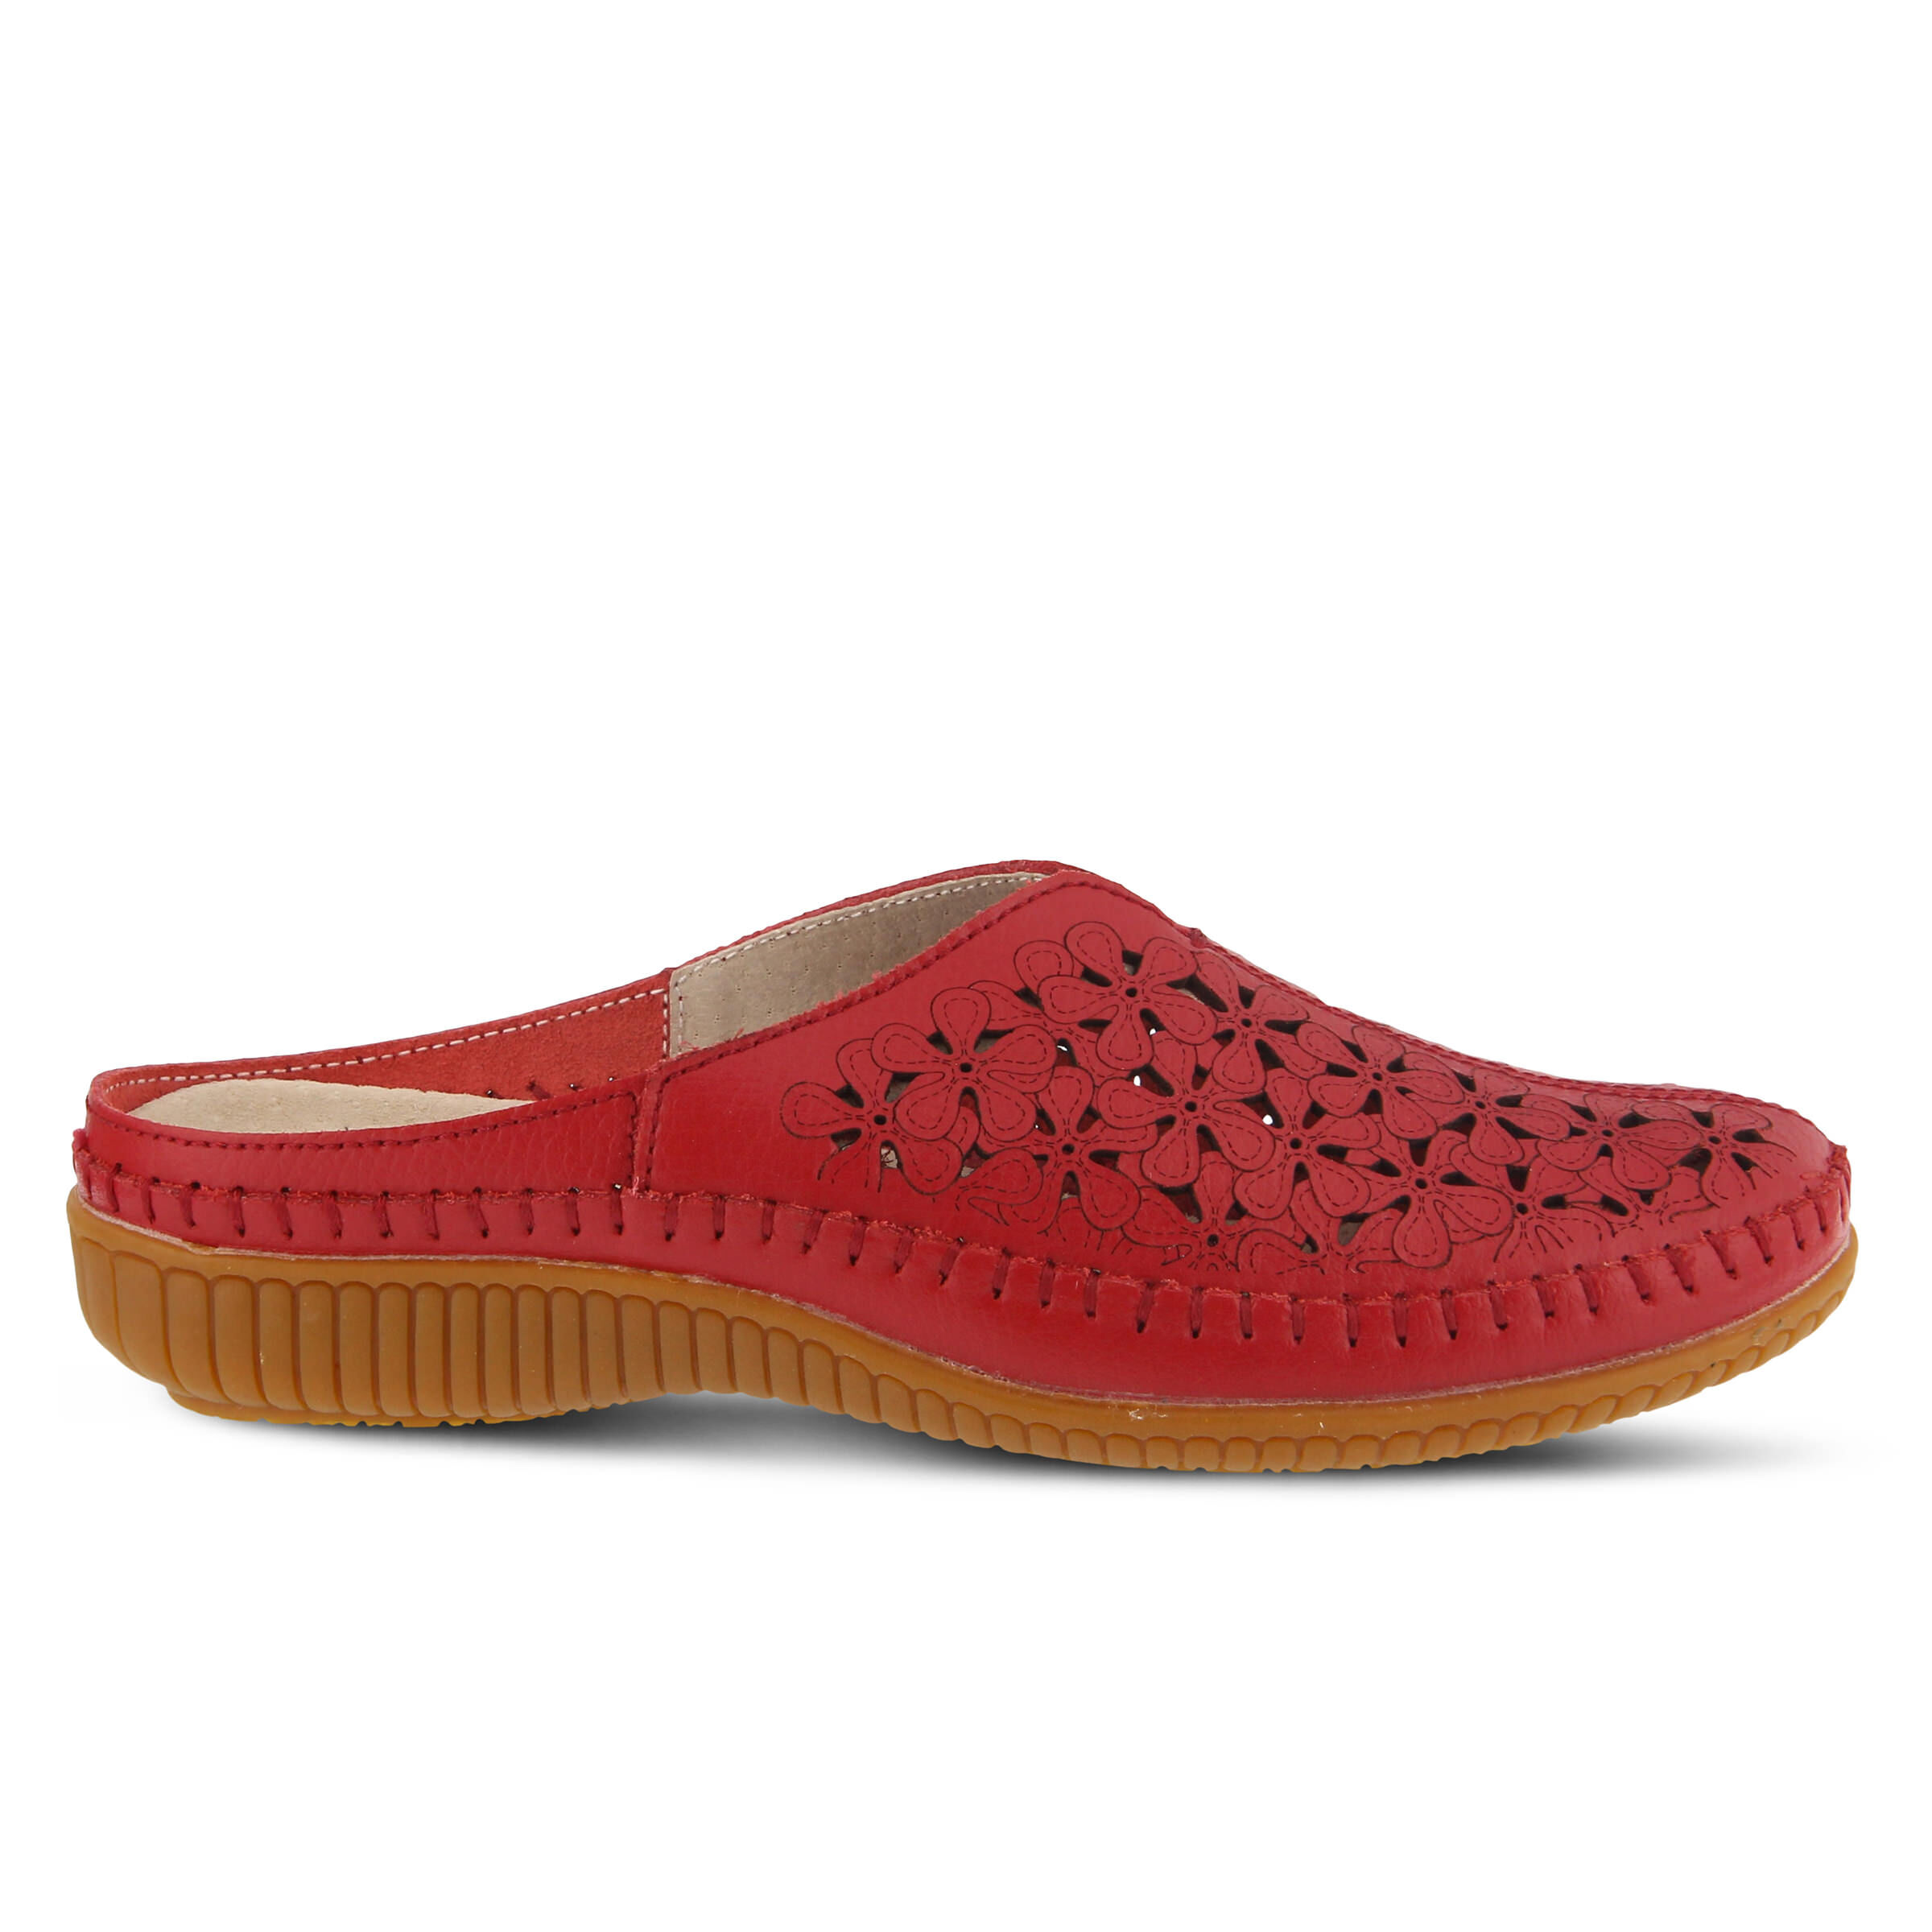 Women's SPRING STEP Parre Clogs Red